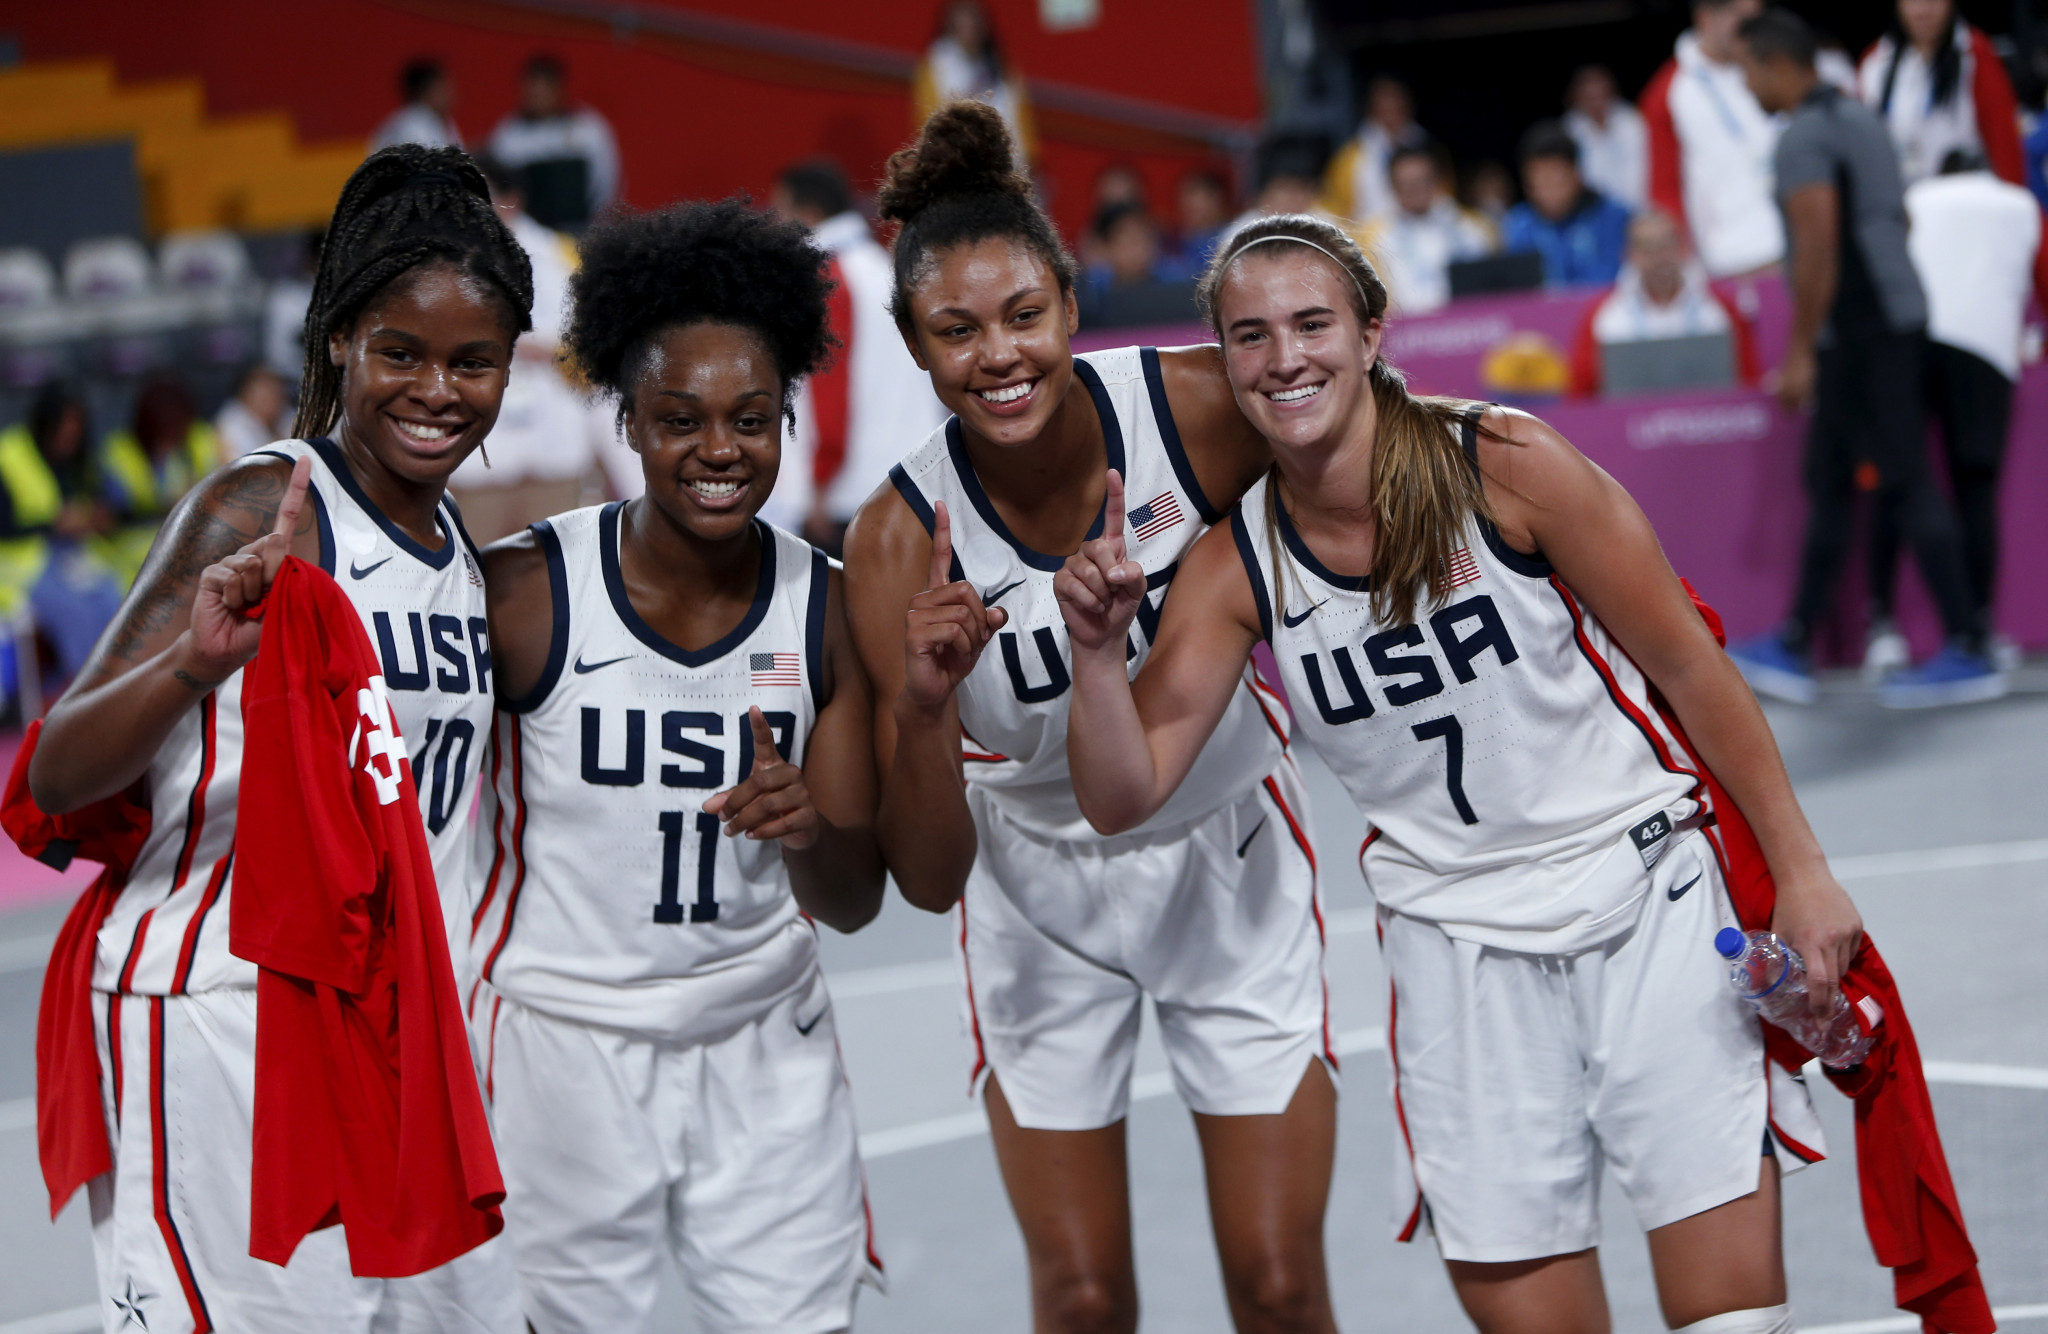 United States warm up for Tokyo 2020 with double victory in Lima 2019 3x3 basketball